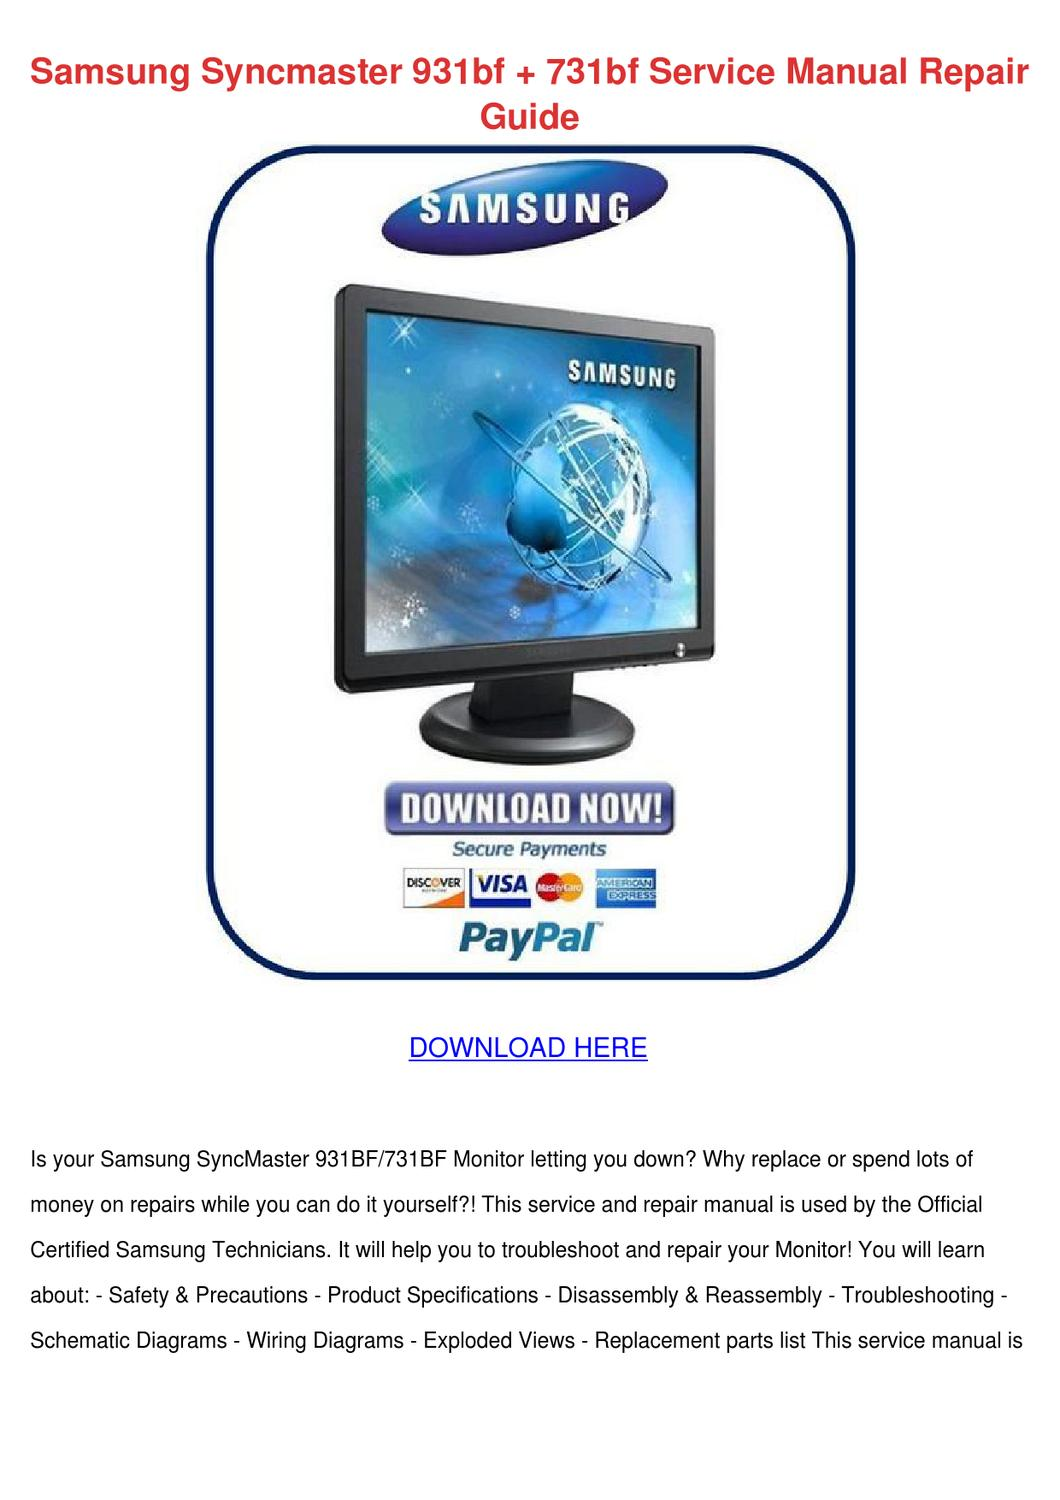 Samsung Syncmaster 931bf 731bf Service Manual by Letha Barreneche ...